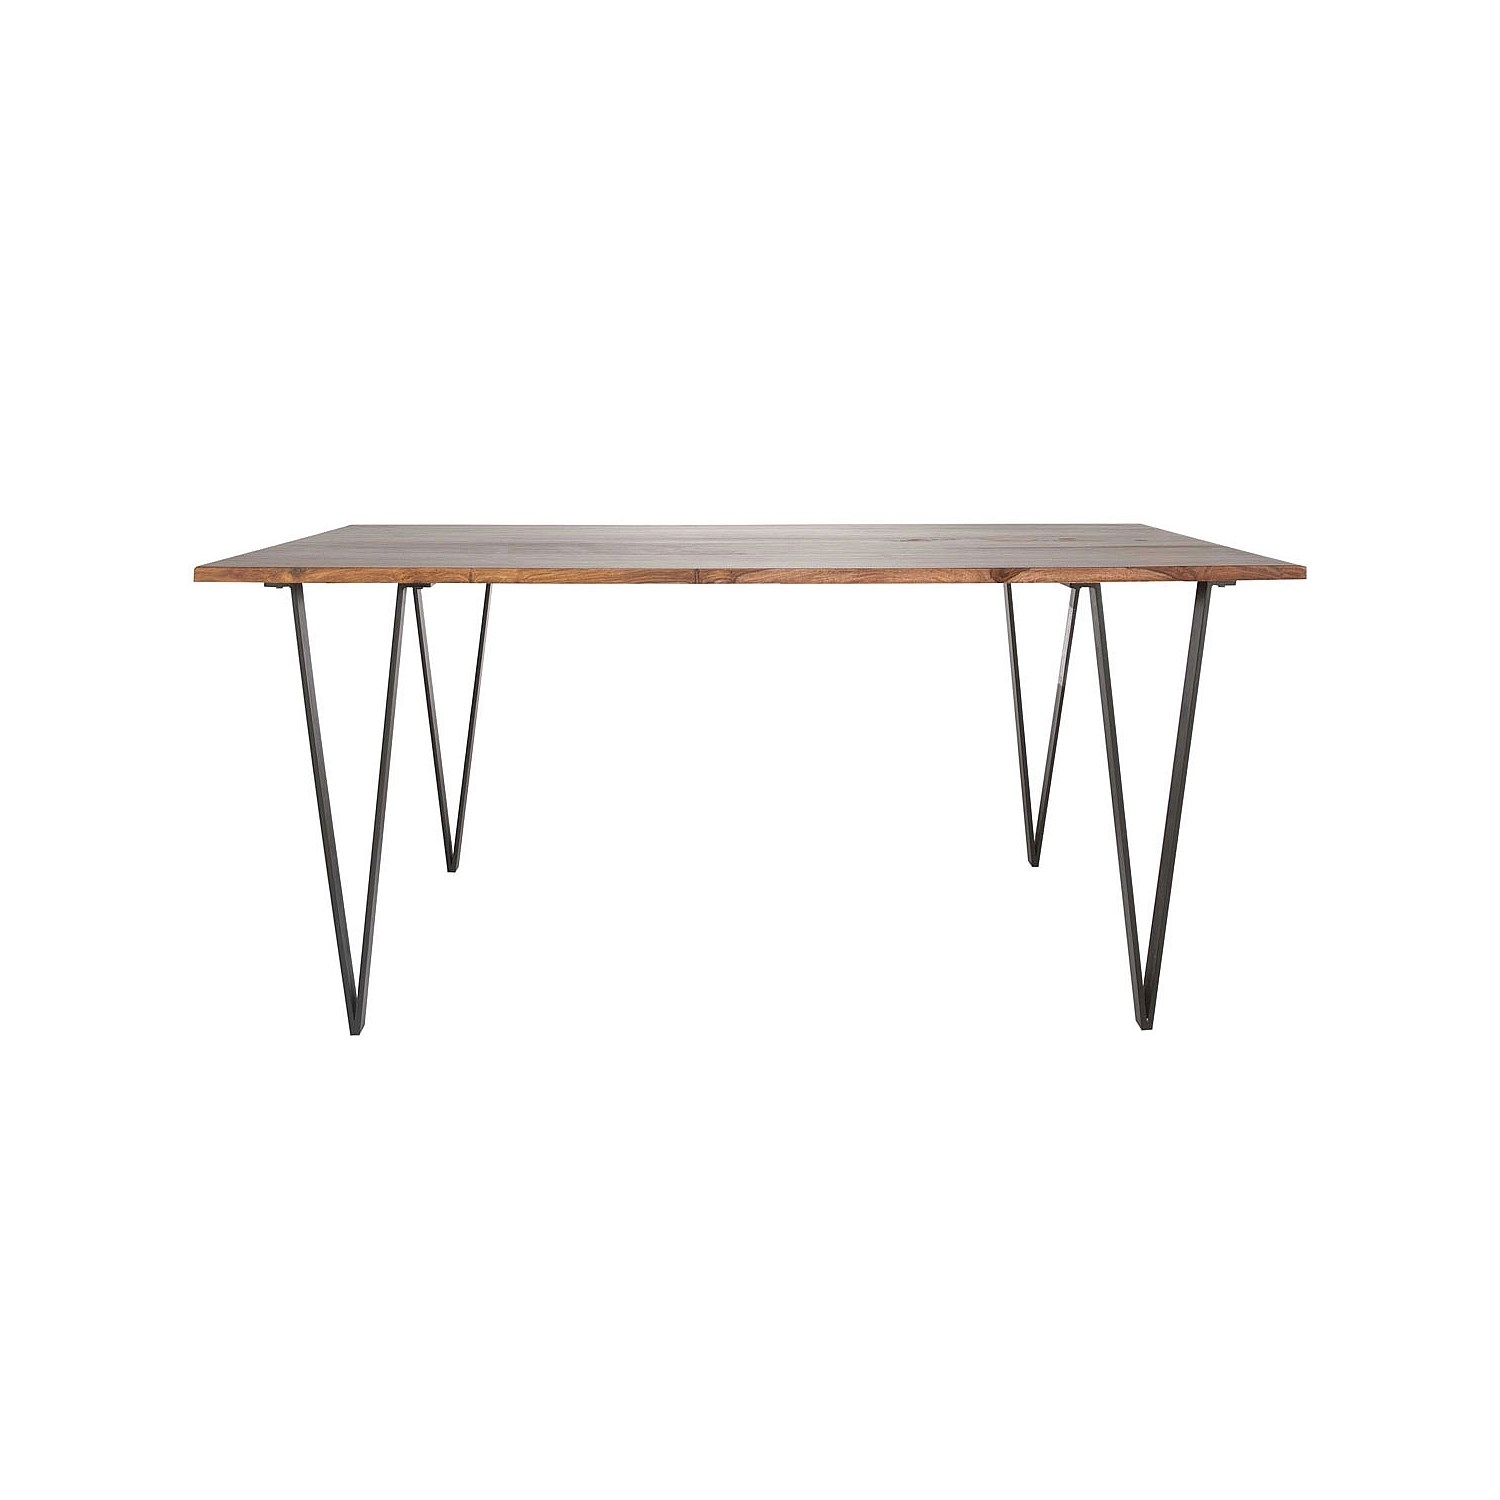 Dining Tables – Wyatt Dining Table 175X90Cm Inside Current Artisanal Dining Tables (View 20 of 20)